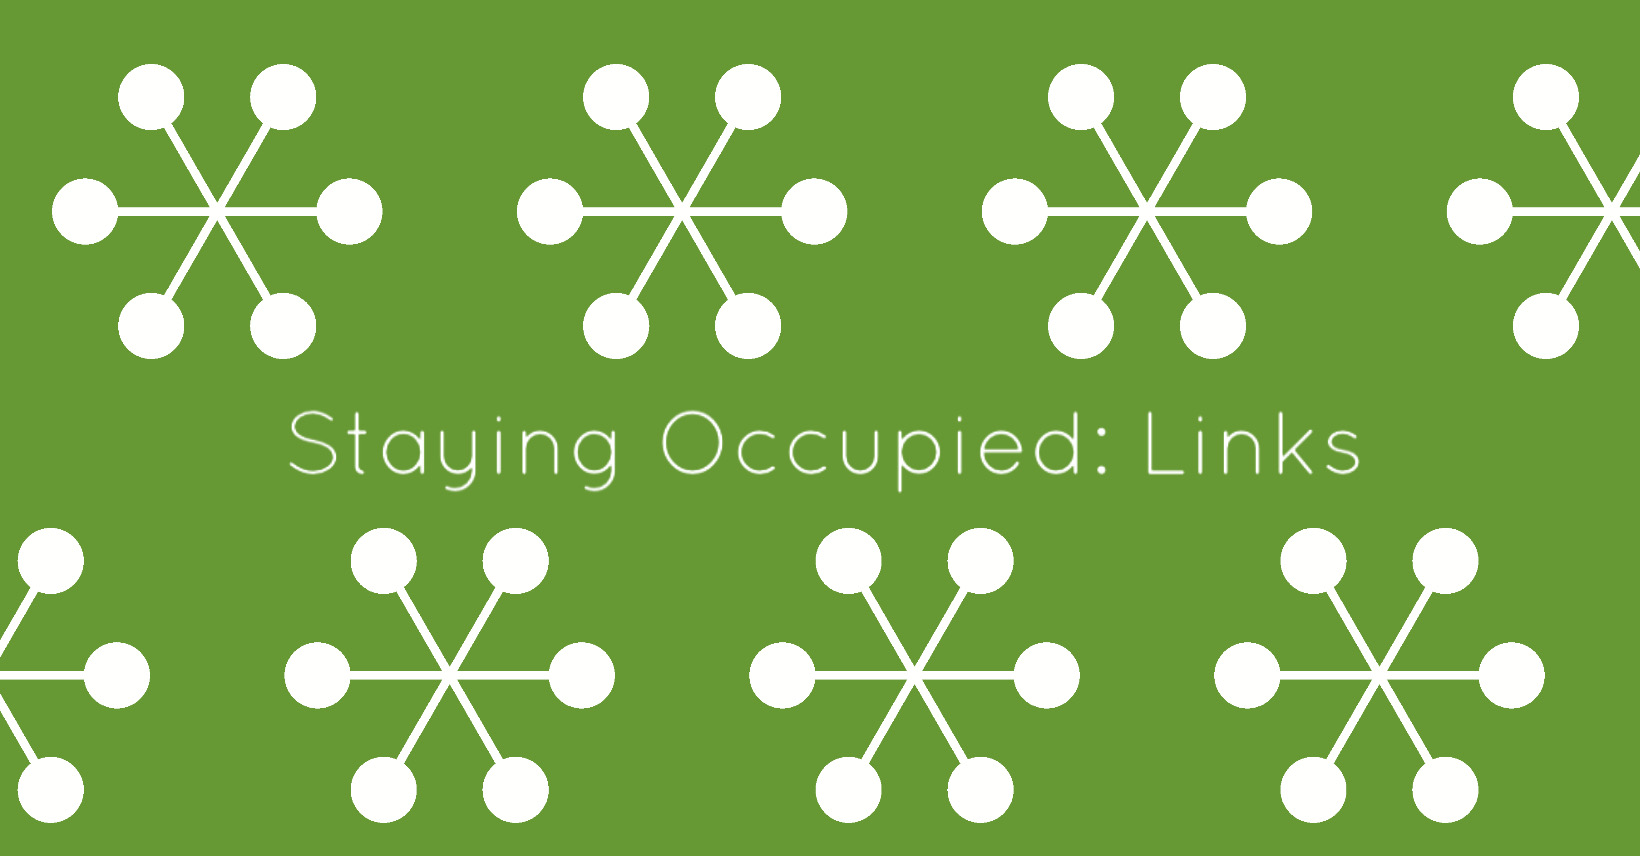 Staying Occupied: Links | www.sproutingbalance.com | #stayhome #socialdistancing #bepositive